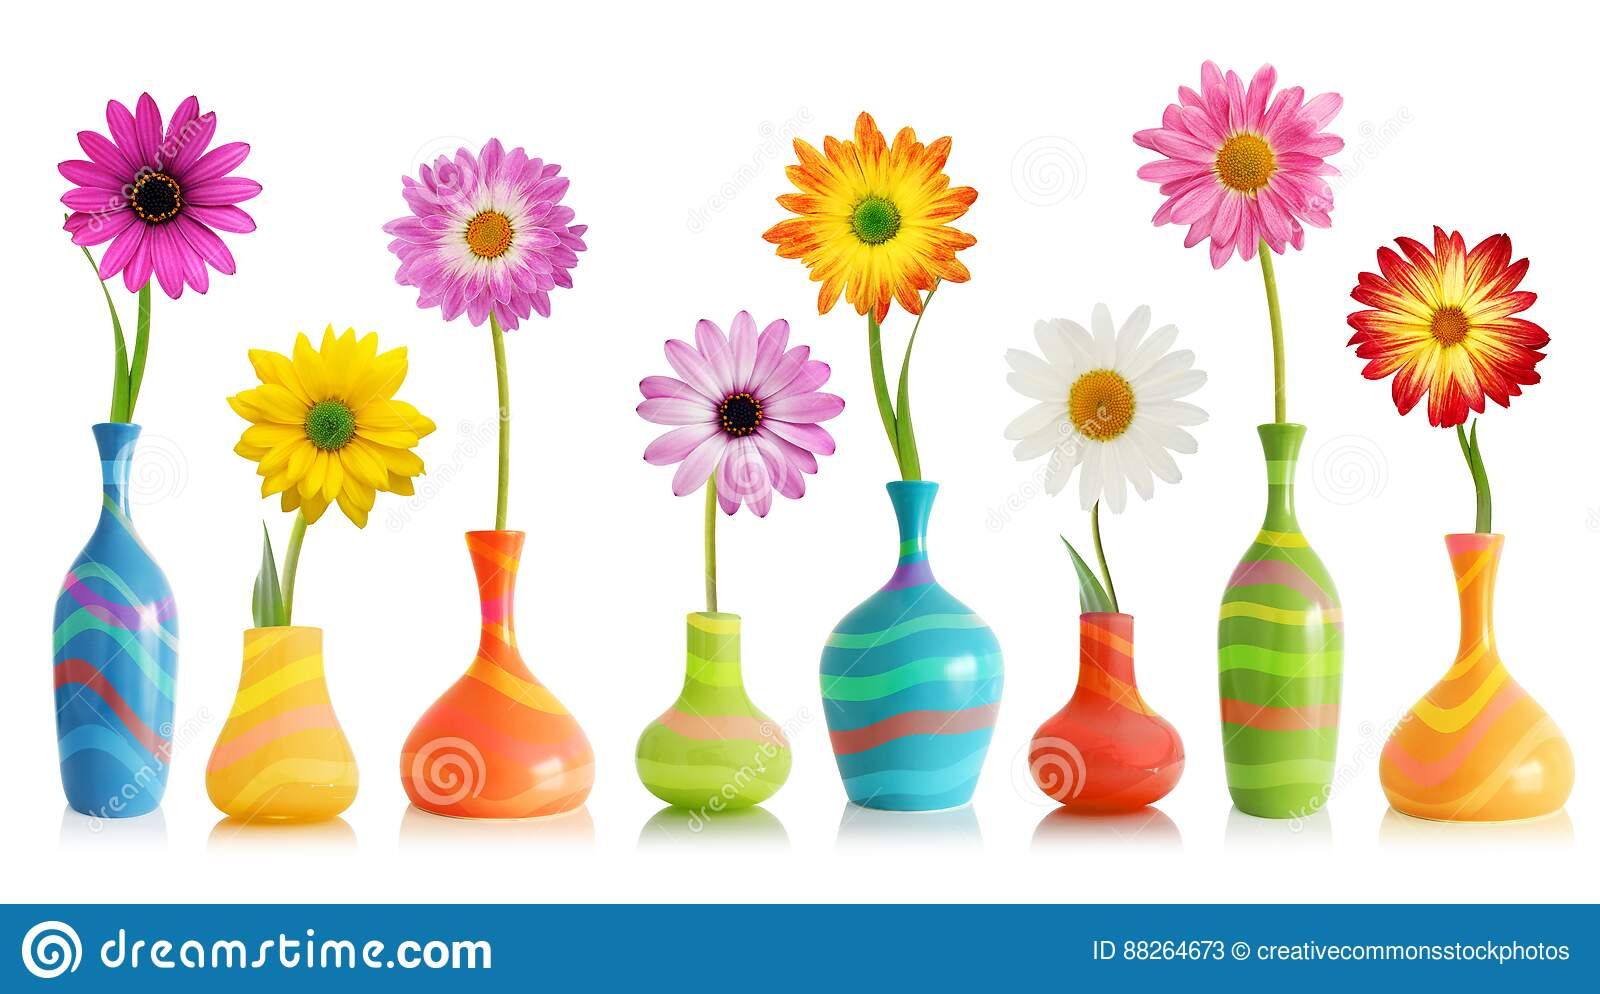 Free Public Domain Cc0 Image Colorful Flowers In Vases Picture